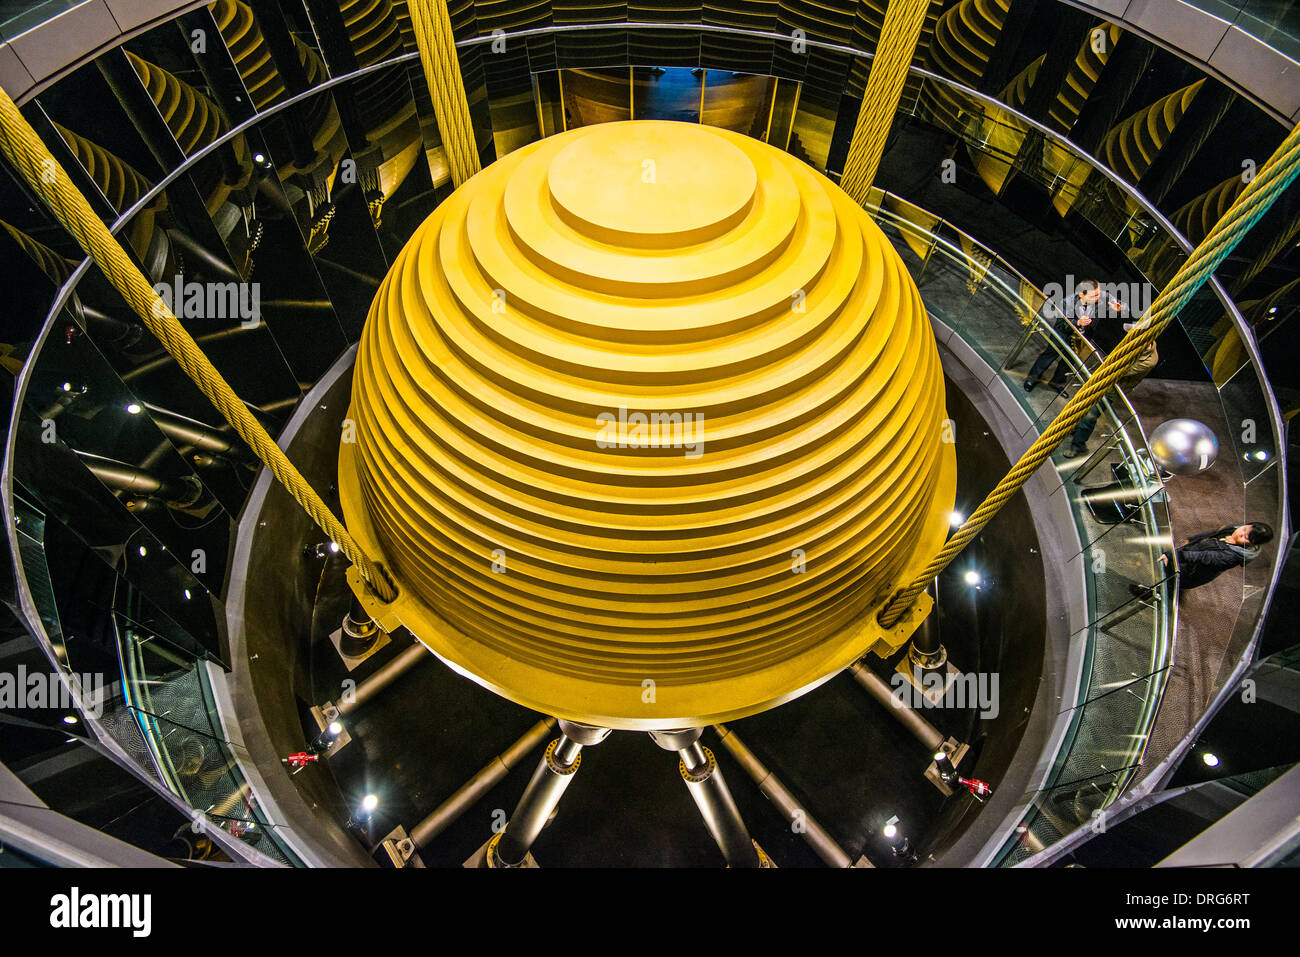 Mass tune damper in Taipei 101 skyscraper. - Stock Image